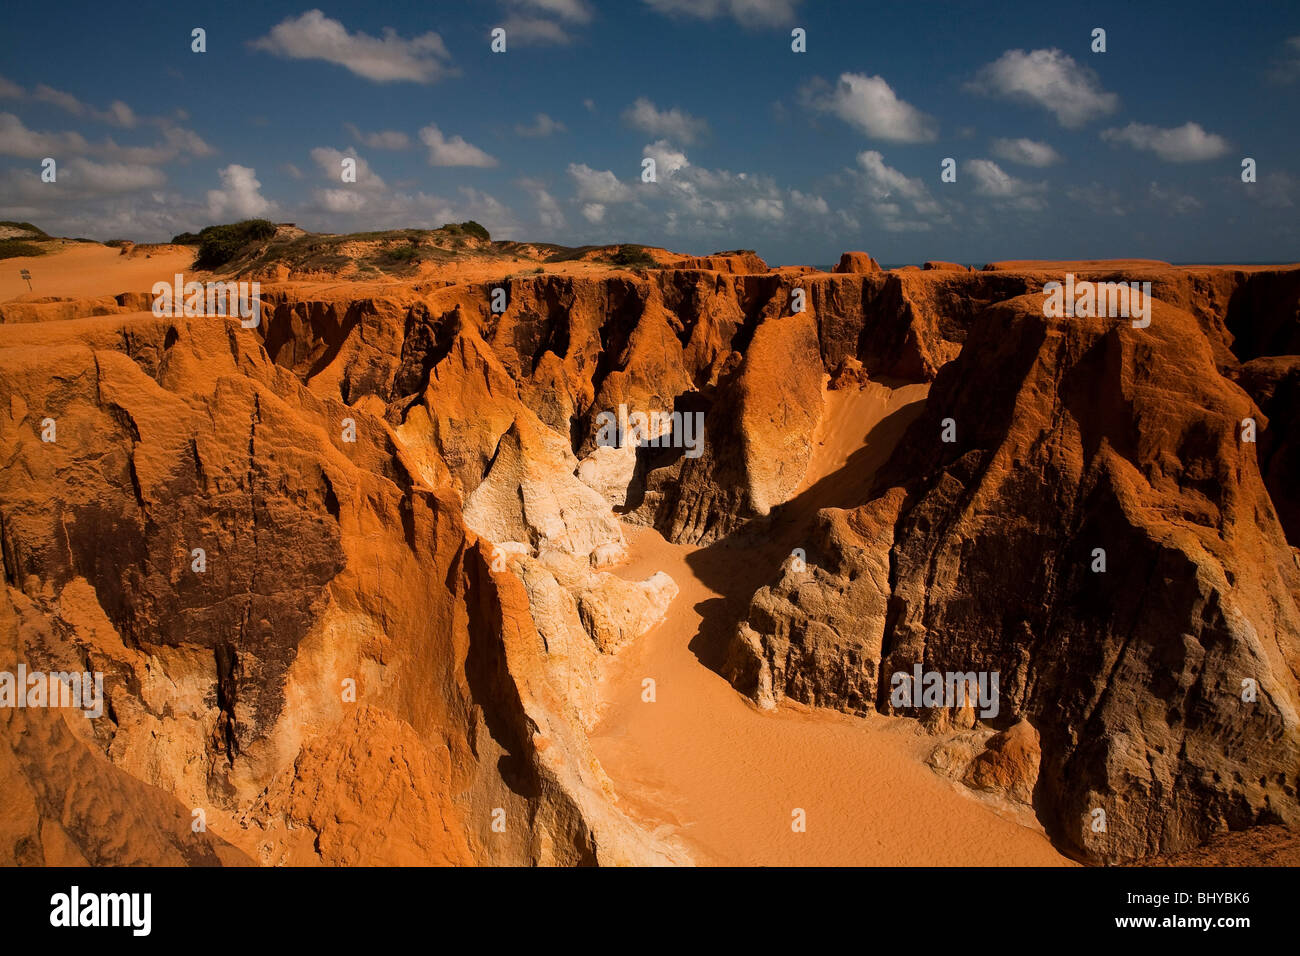 Morro Branco beach cliffs and labyrinths, Ceara State, Northeast Brazil. Stock Photo